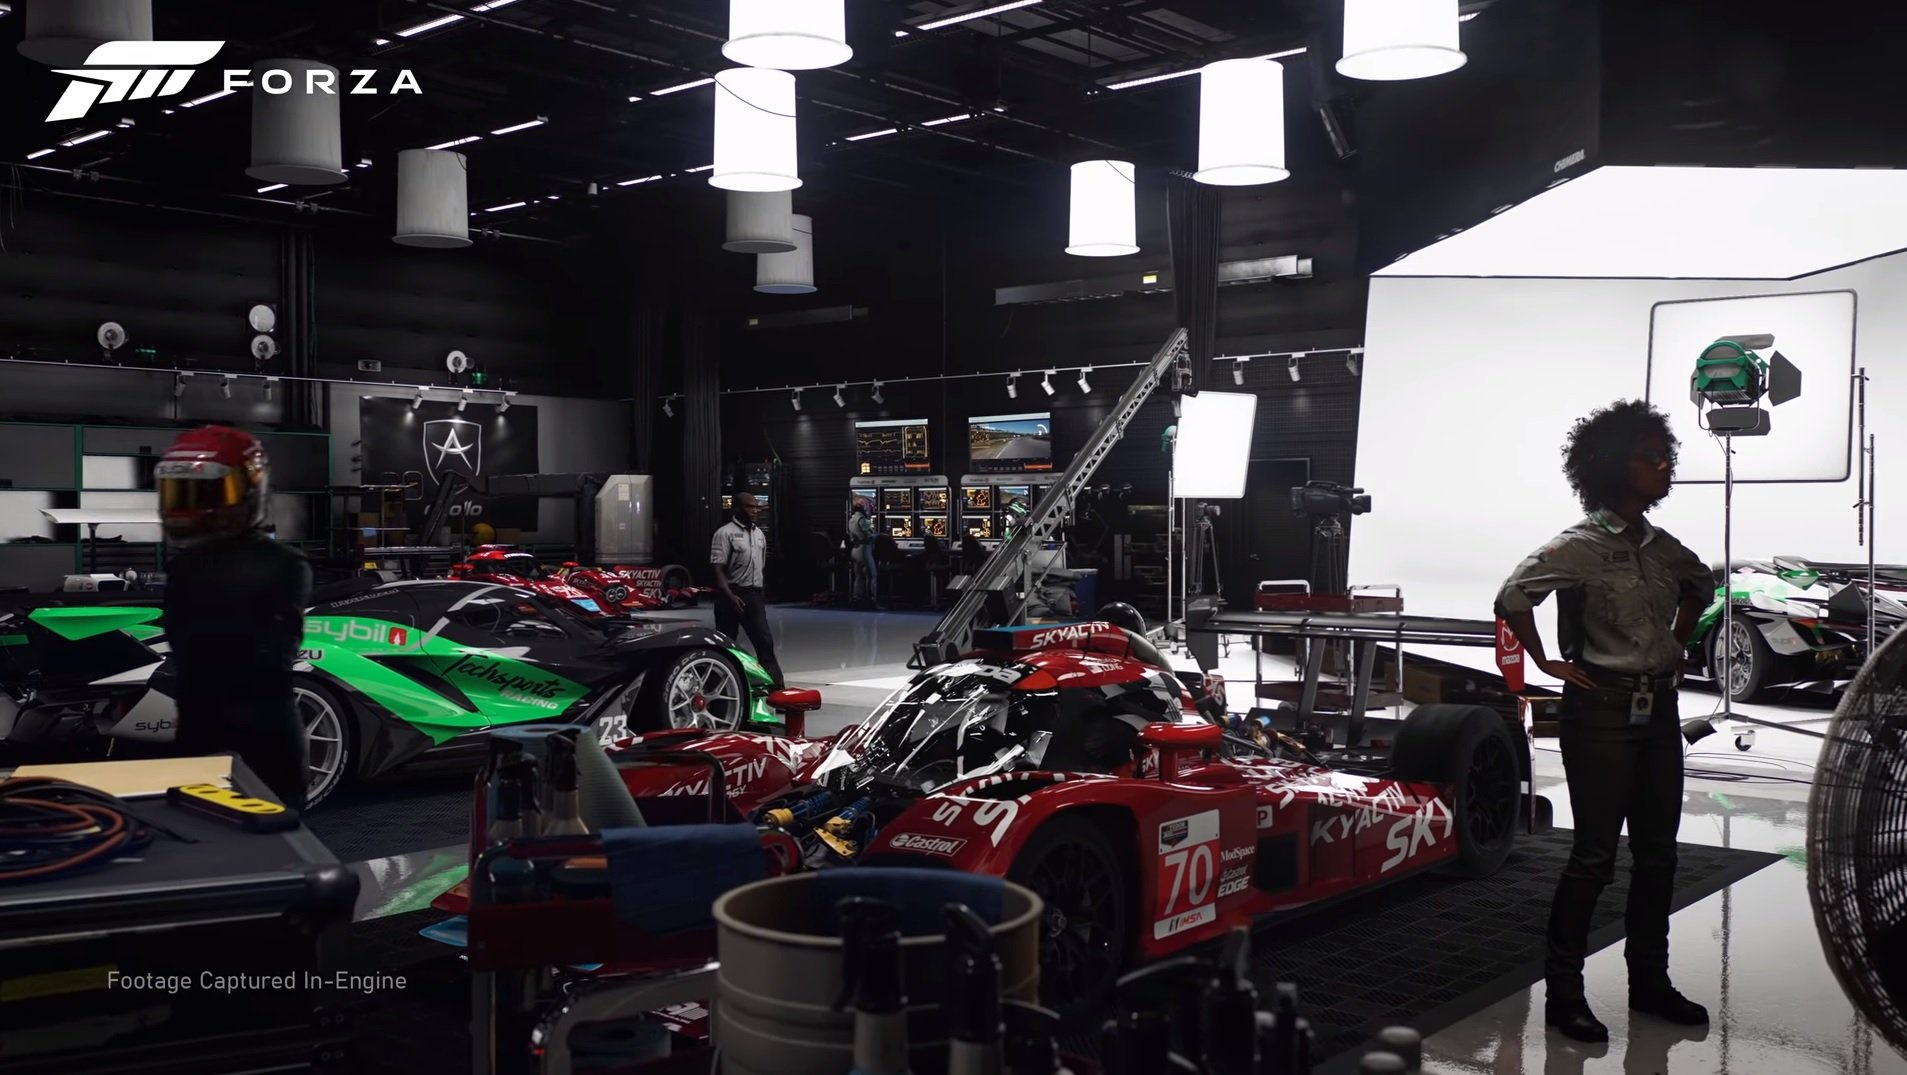 Forza Motorsport is a 'reimagining' which is a weird term for a sim racer screenshot